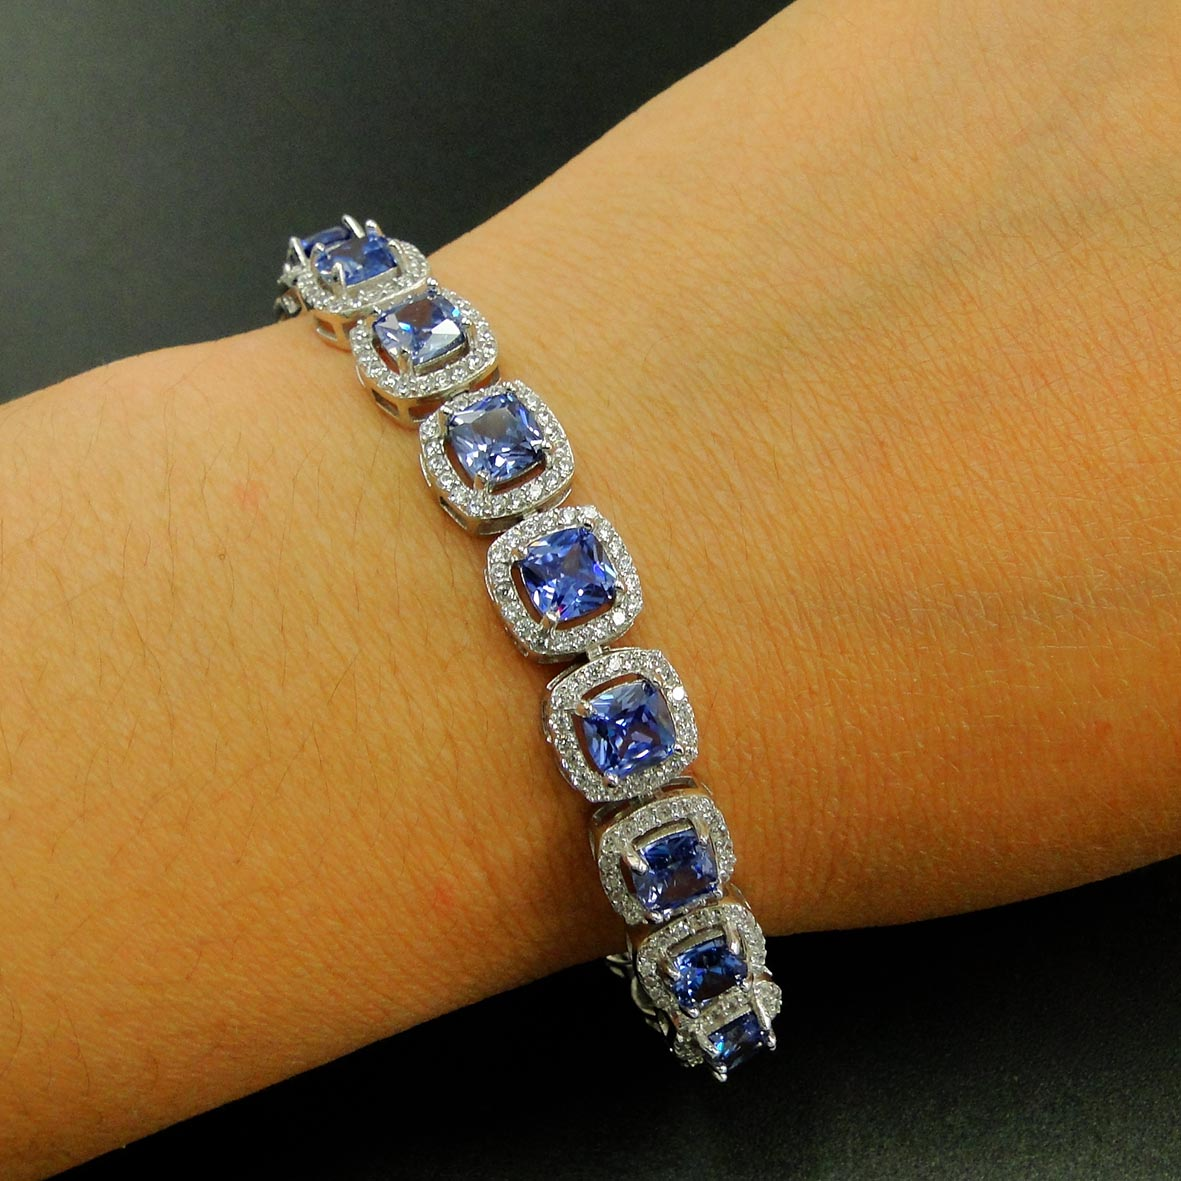 Review High Quality 100% Real 925 Sterling Silver Bracelet Tanzanite CZ Bracelets for Women Engagement Wedding Jewelry Gift